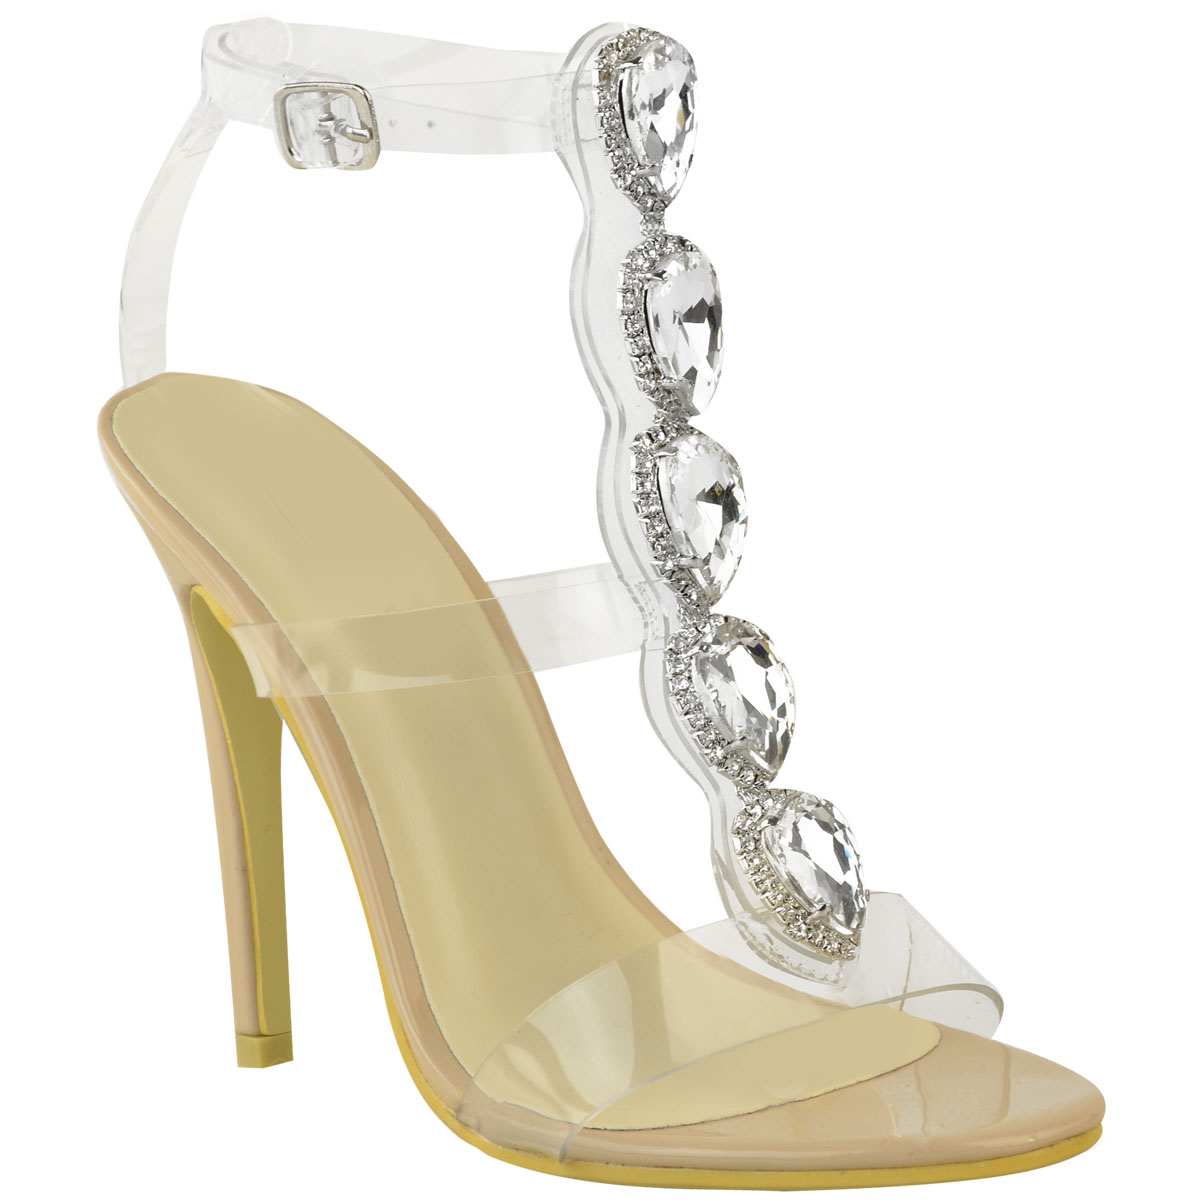 New-Womens-Ladies-Perspex-High-Heel-Jewel-Stiletto-Sandals-Strappy-Shoes-Size